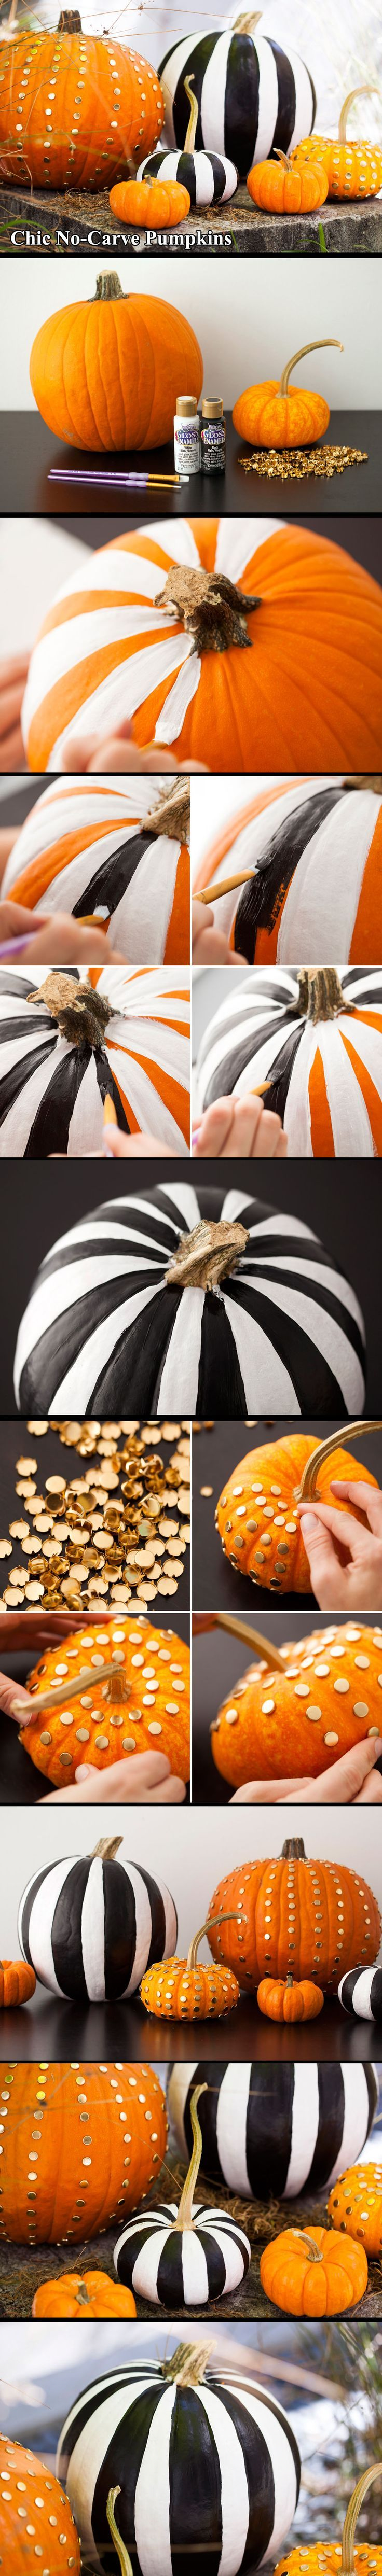 2 ways to make chic no carve pumpkins - Pumpkins Decorations